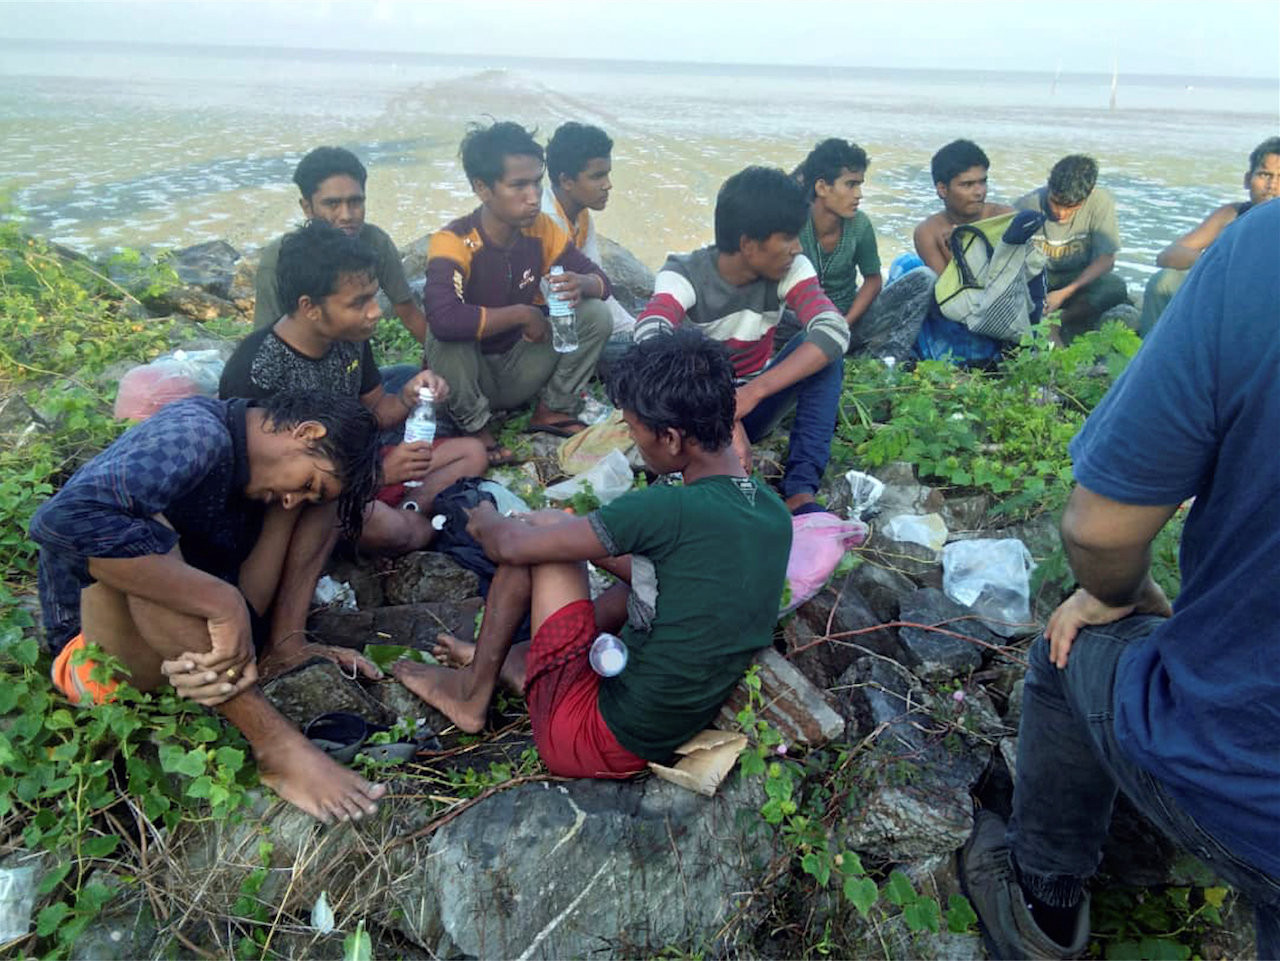 Second group of Rohingya Muslims found on Malaysian beach: Police